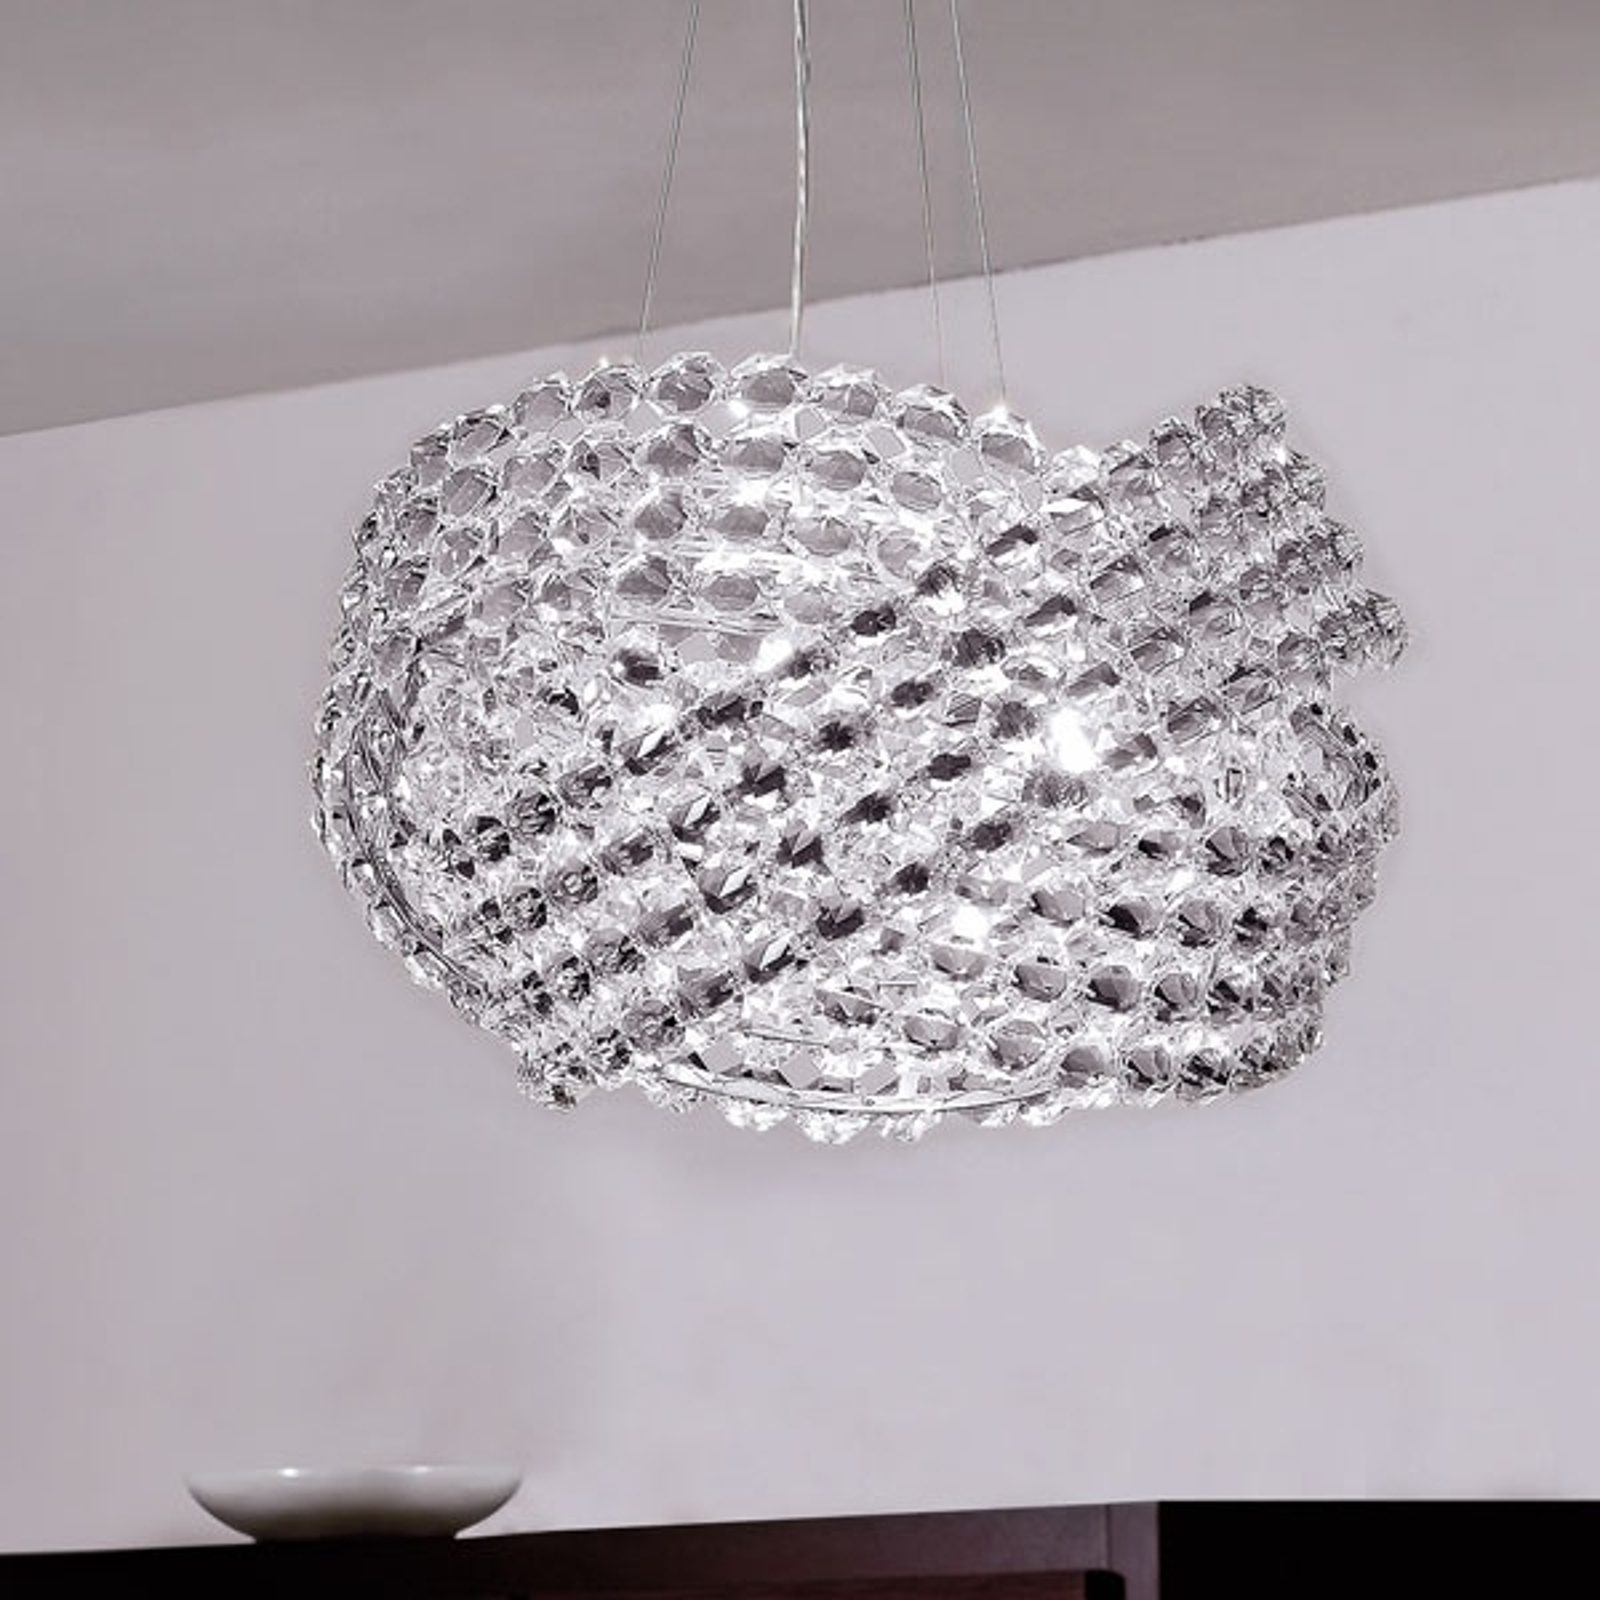 Suspension en cristal DIAMANTE Ø 40 cm